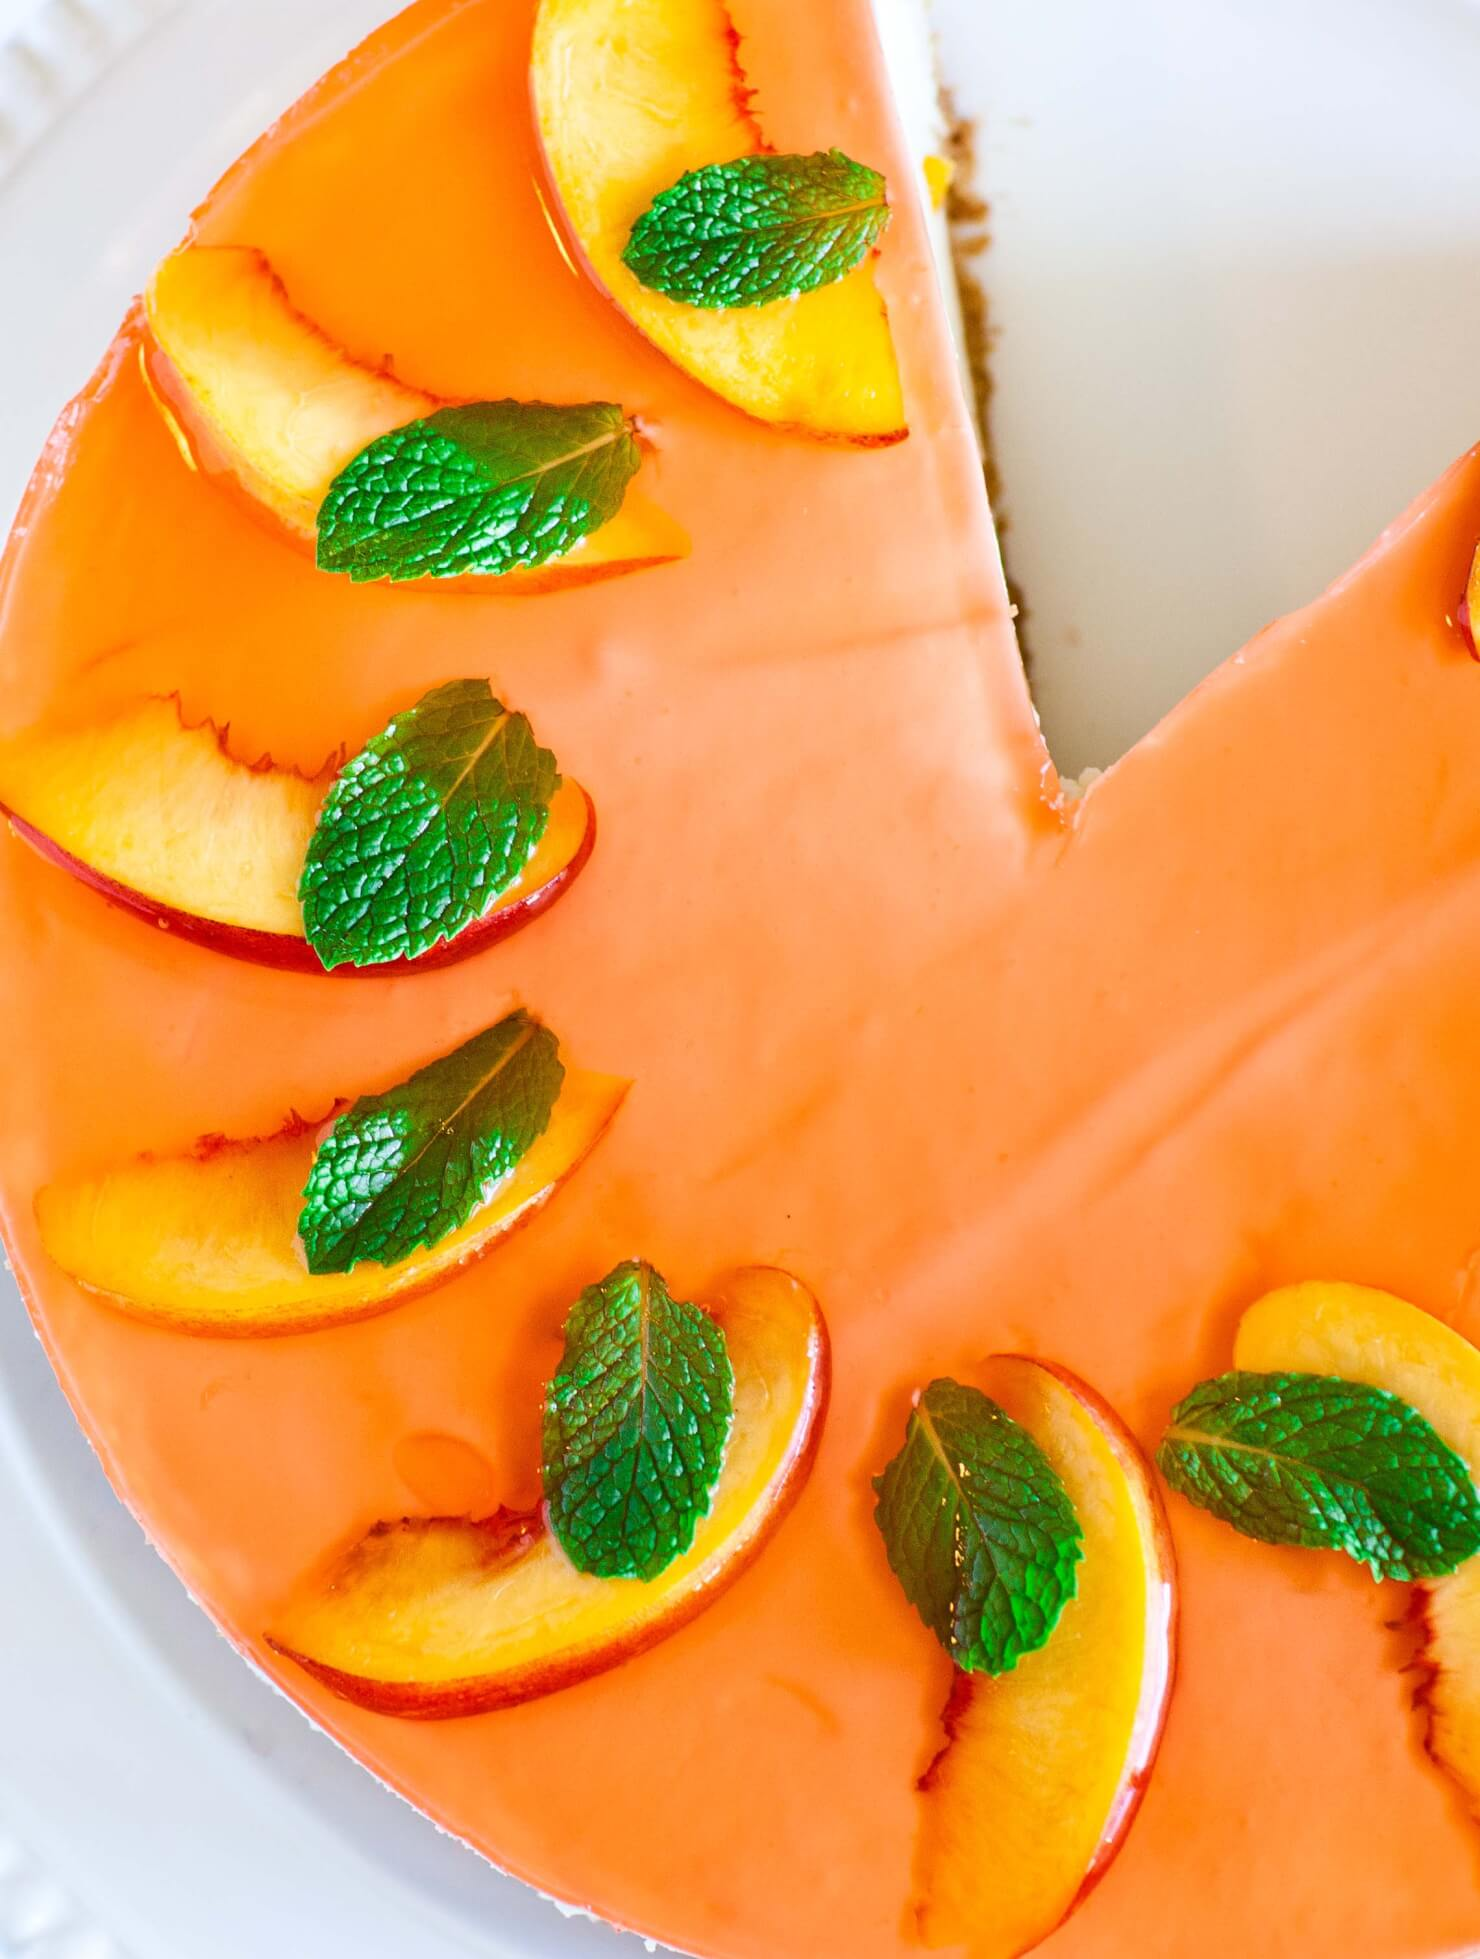 Smartly Peach Mousse Cake Peach Mousse Cake Tatyanas Everyday Food Knox Unflavored Gelatin Drug Test Knox Unflavored Gelatin Ingredients houzz-02 Knox Unflavored Gelatin